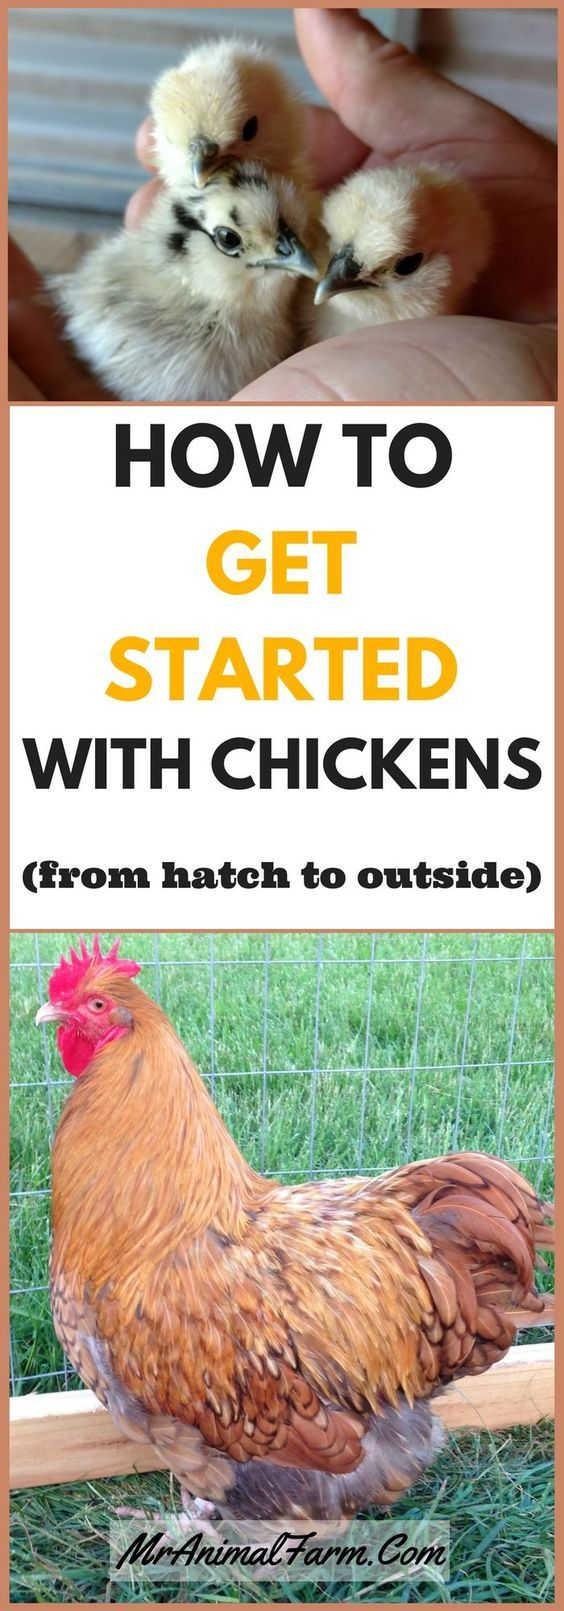 Getting started raising chickens can be overwhelming, but it doesn't have to be!  Learn all about raising chickens from hatching to taking them outside.